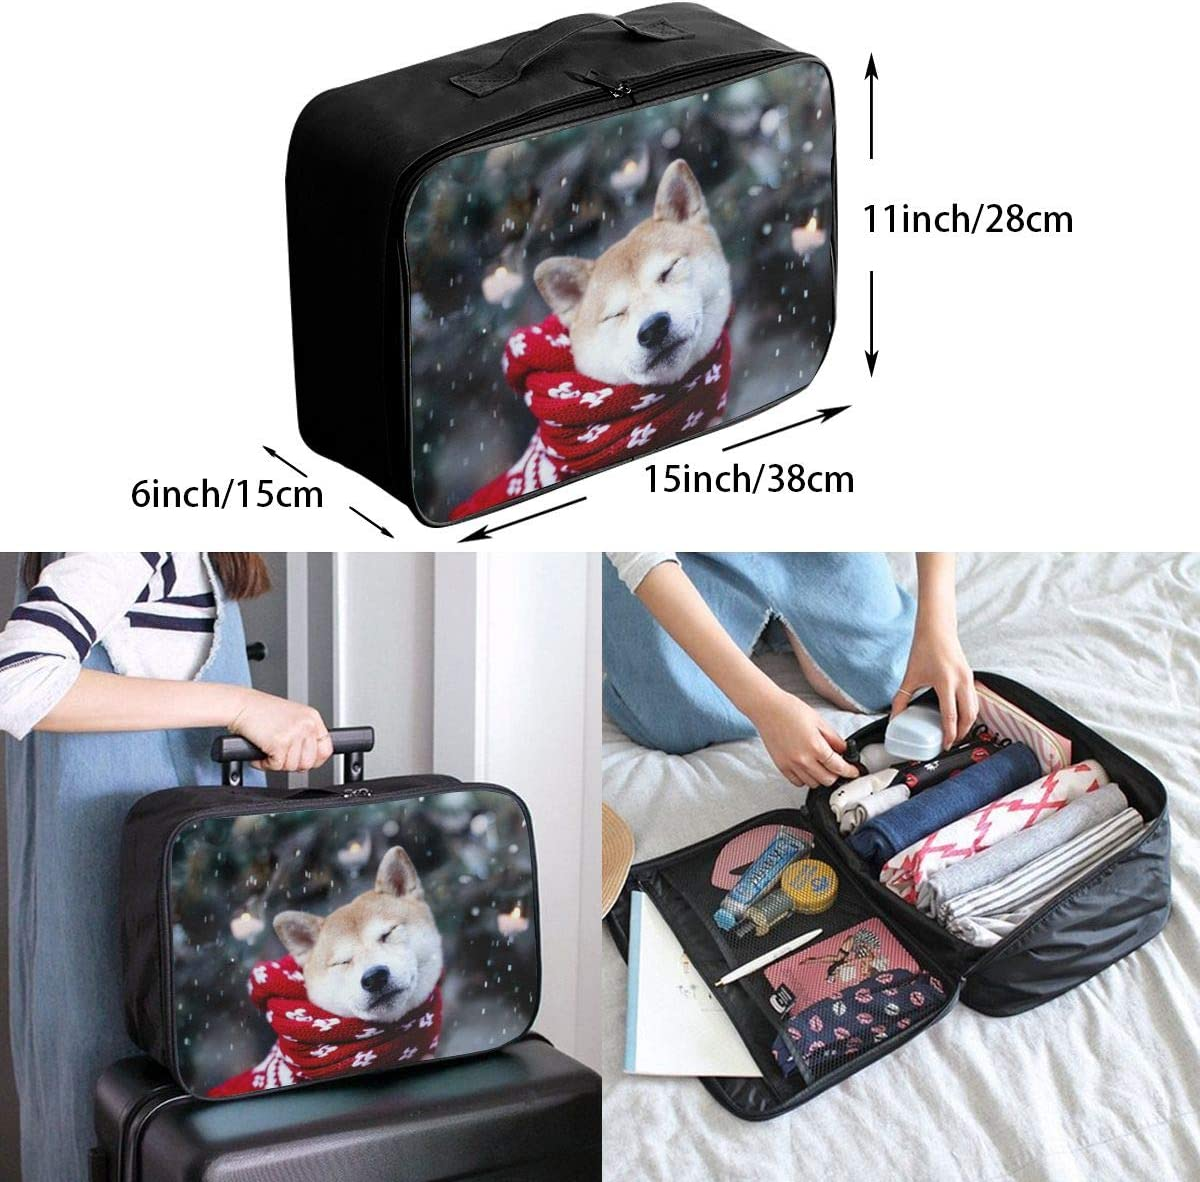 Dog Travel Carry-on Luggage Weekender Bag Overnight Tote Flight Duffel In Trolley Handle